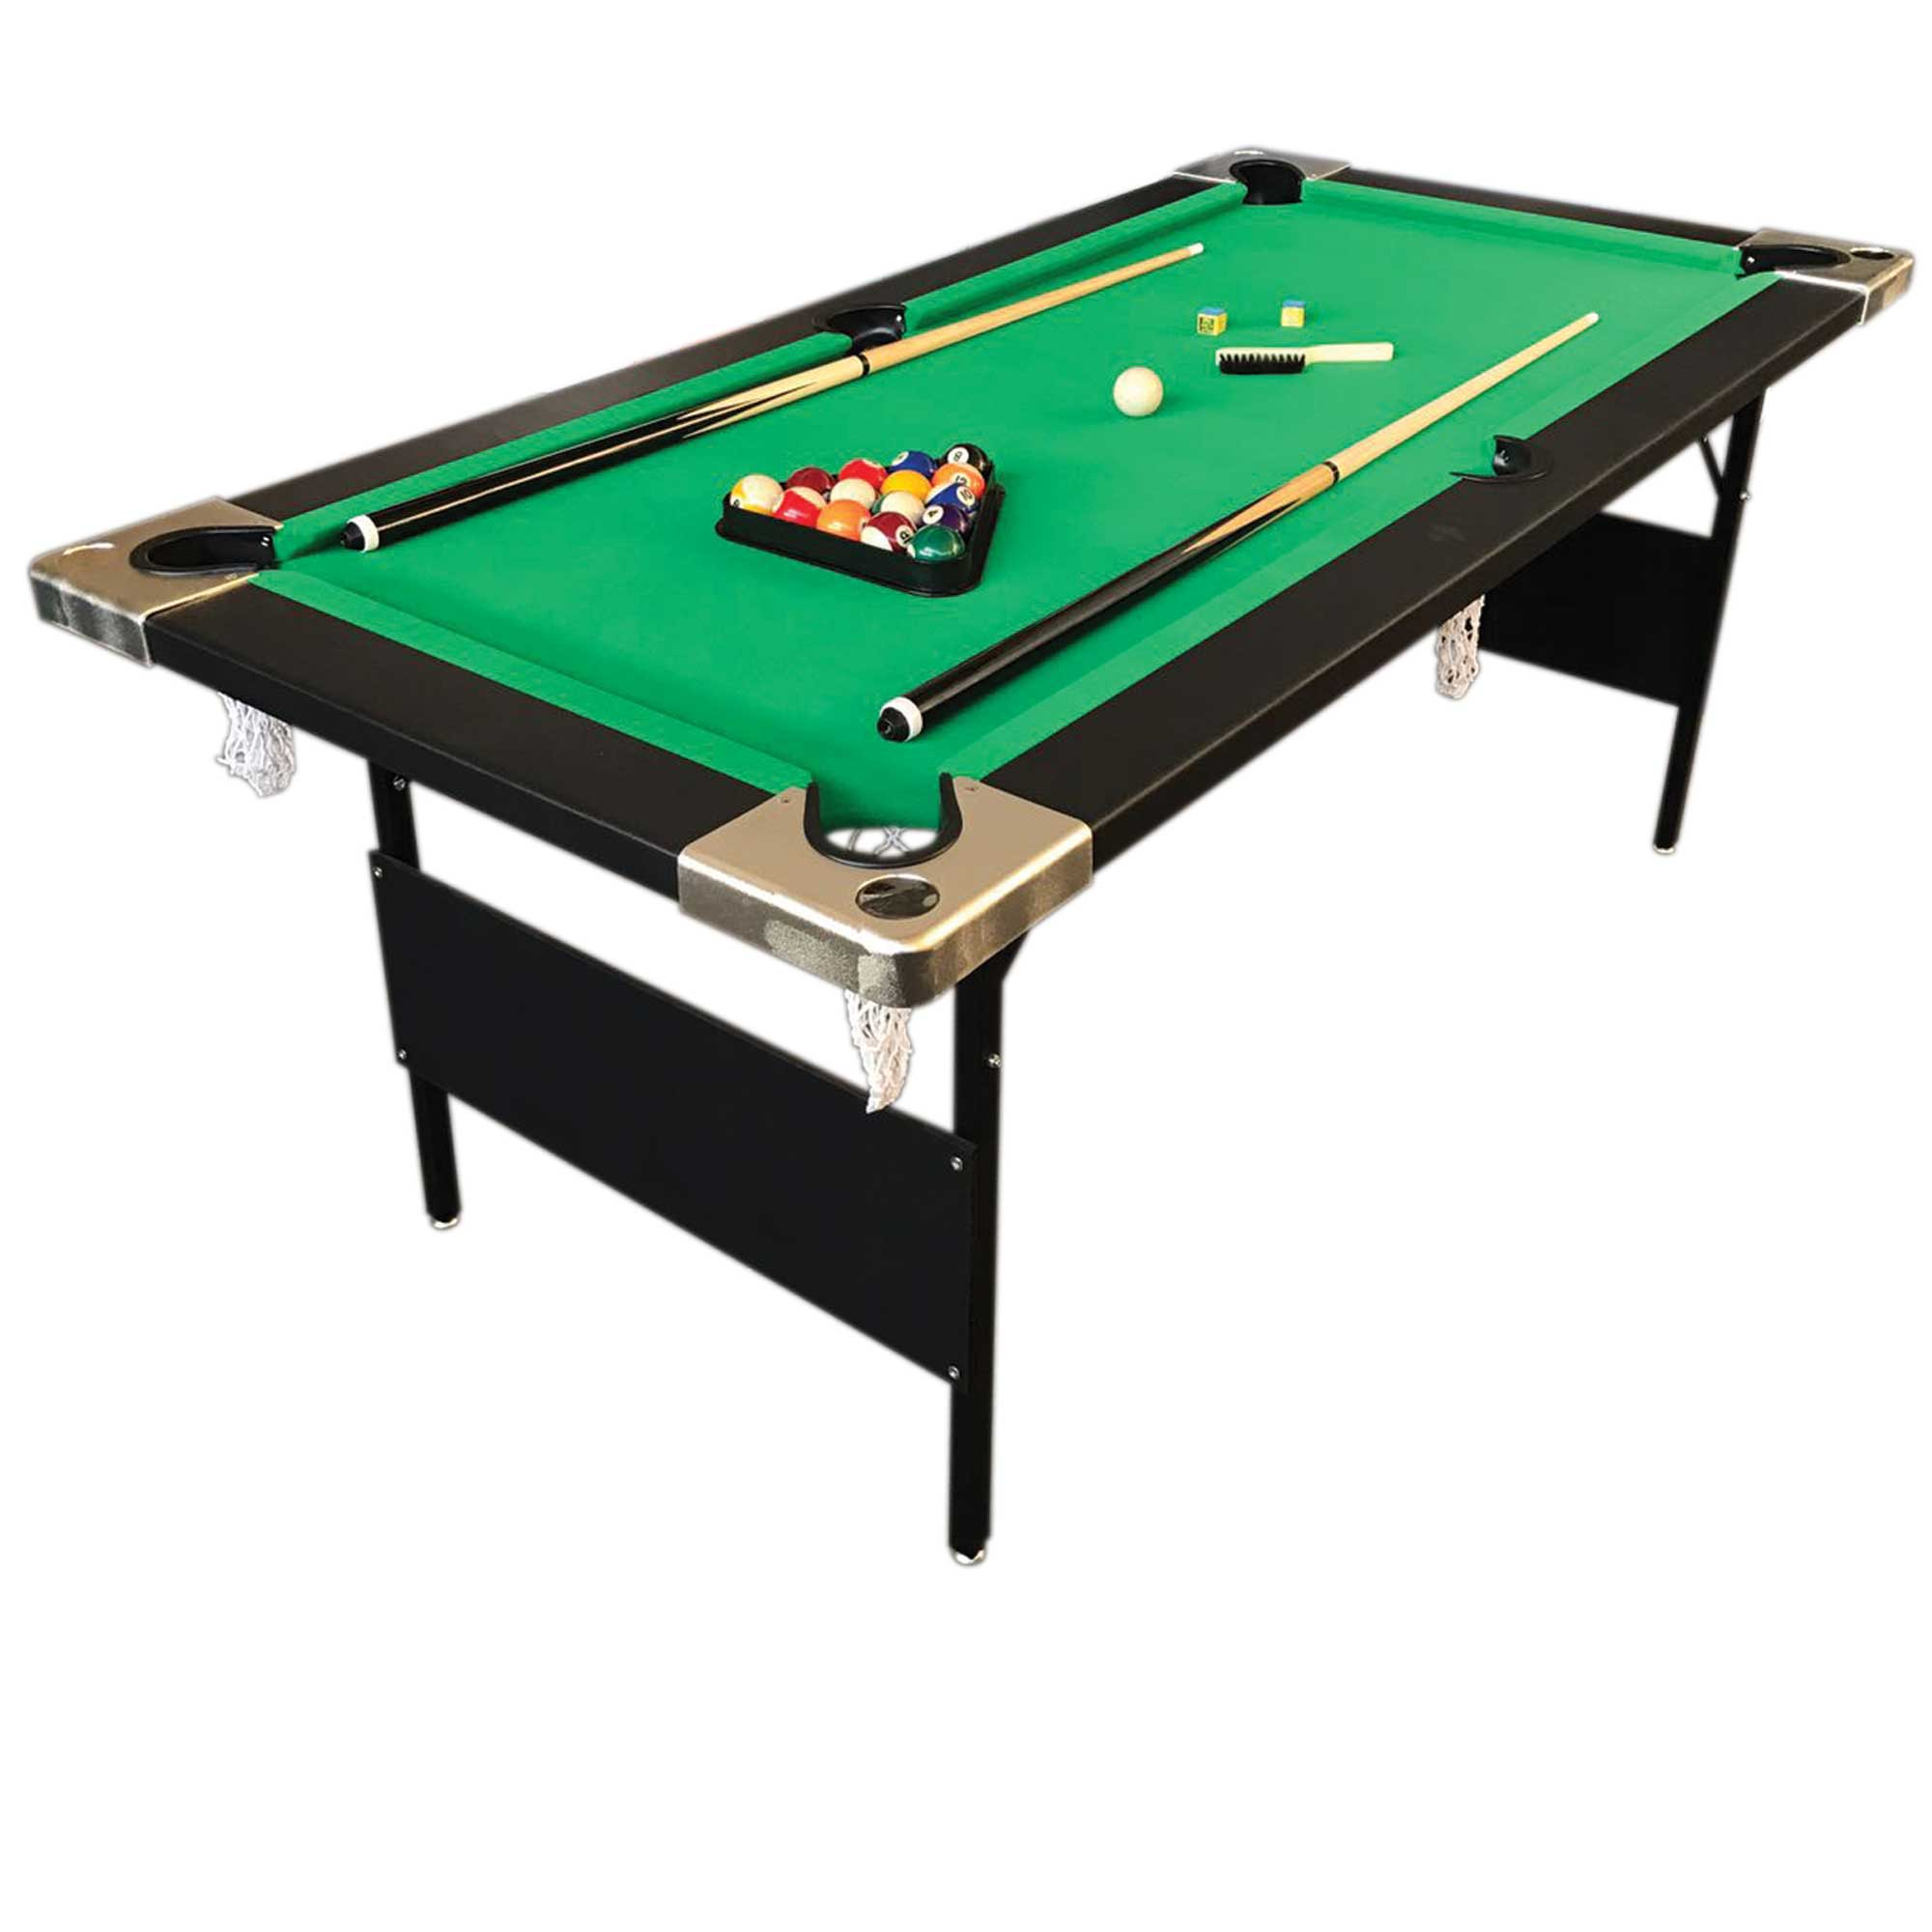 6 39 feet billiard pool table portable snooker accessories. Black Bedroom Furniture Sets. Home Design Ideas